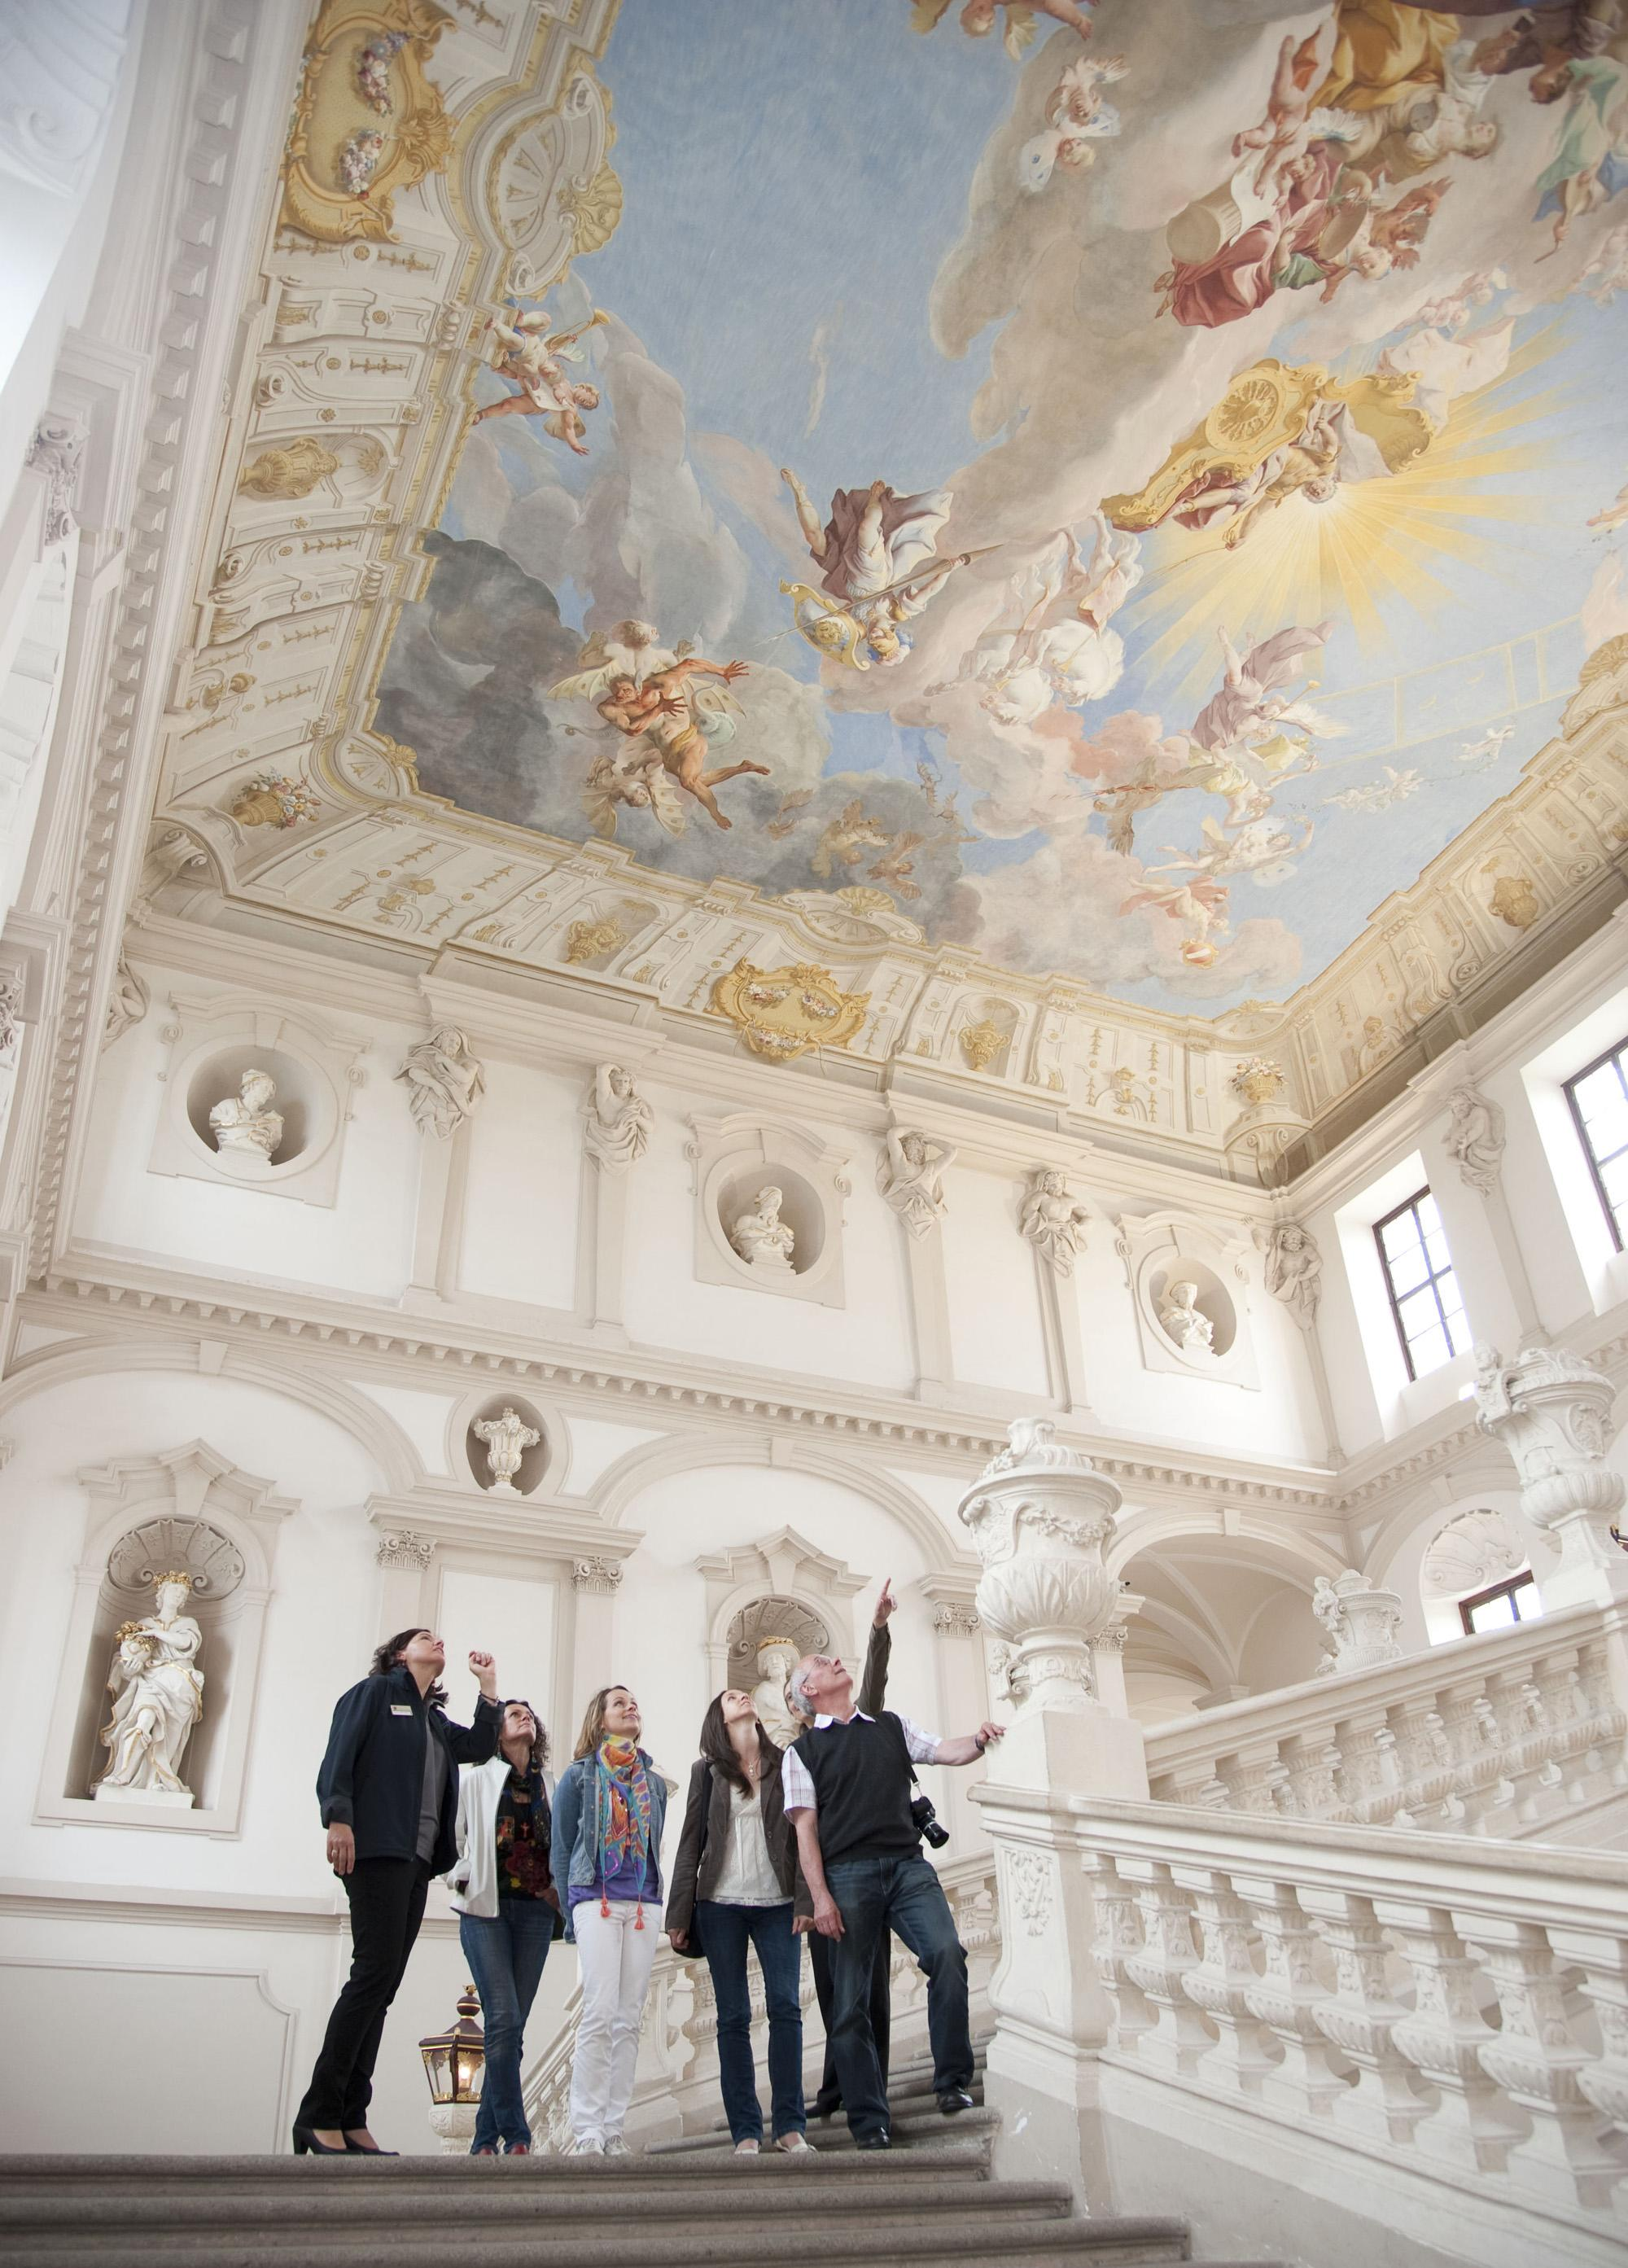 The imperial staircase of Göttweig Abbey is one of the largest and most beautiful baroque staircases in the World. – © Josef Herfert / Stift Göttweig